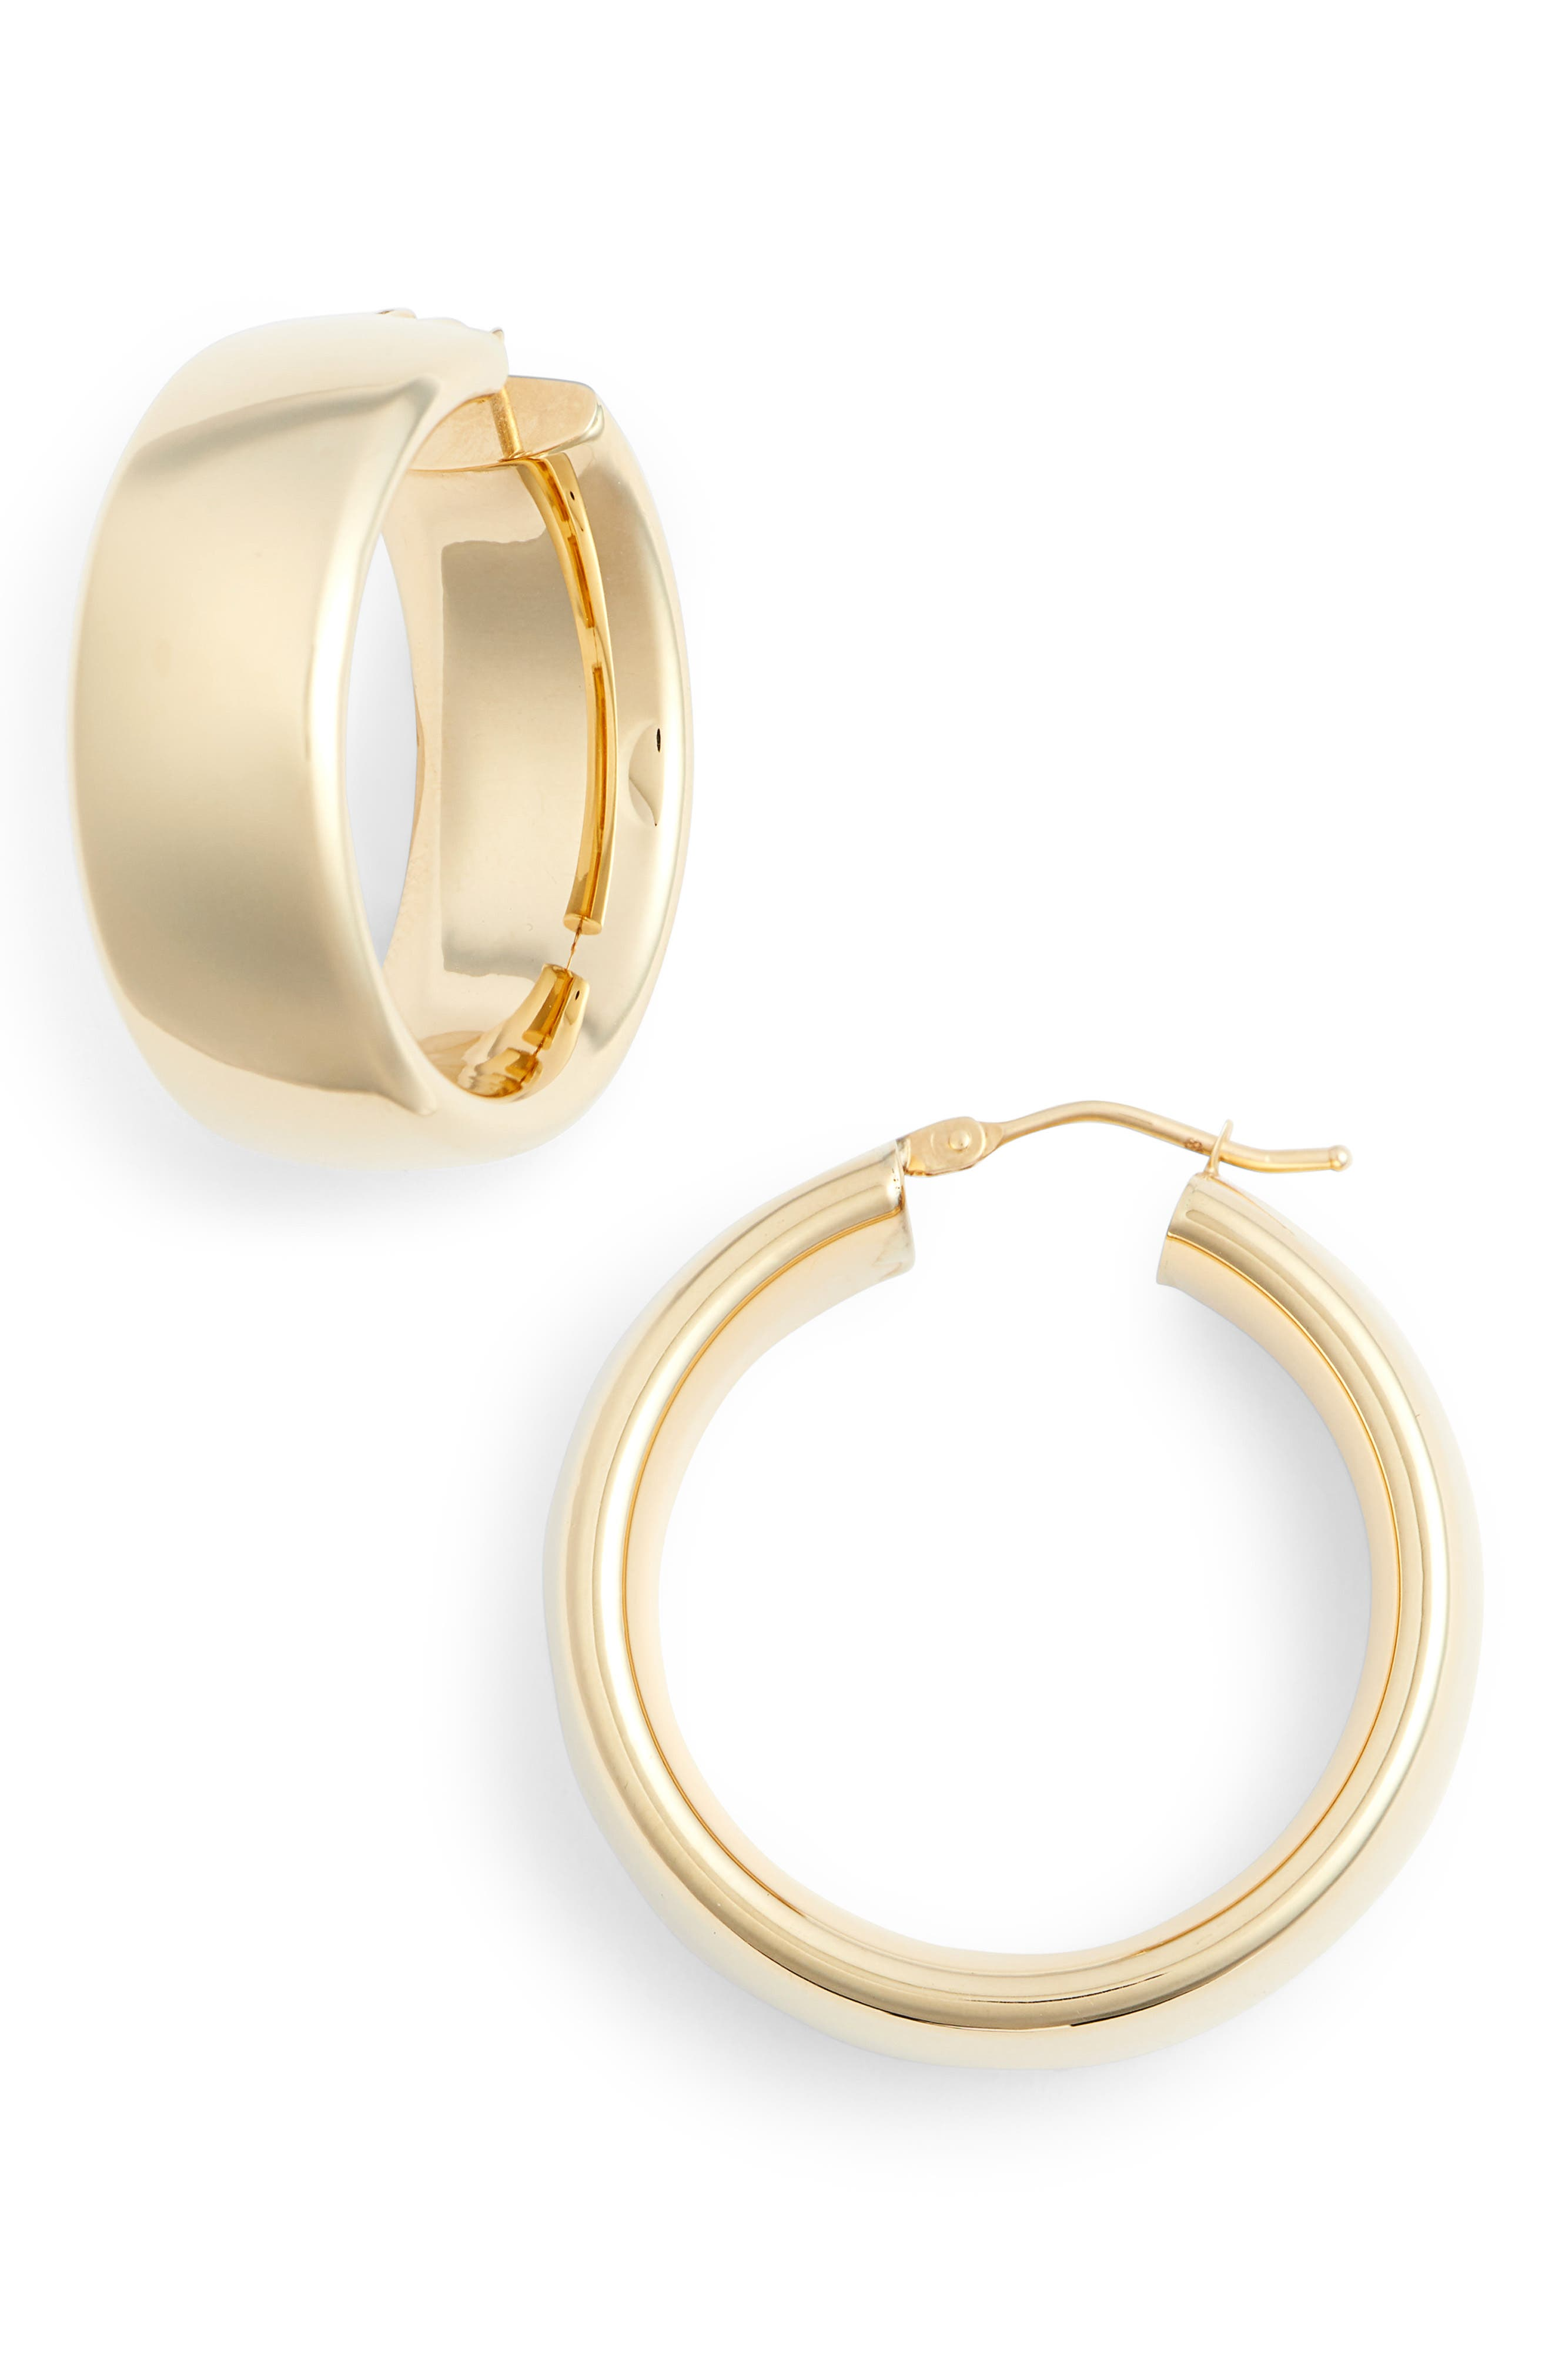 Wide Round Hoop Earrings,                         Main,                         color, Yellow Gold